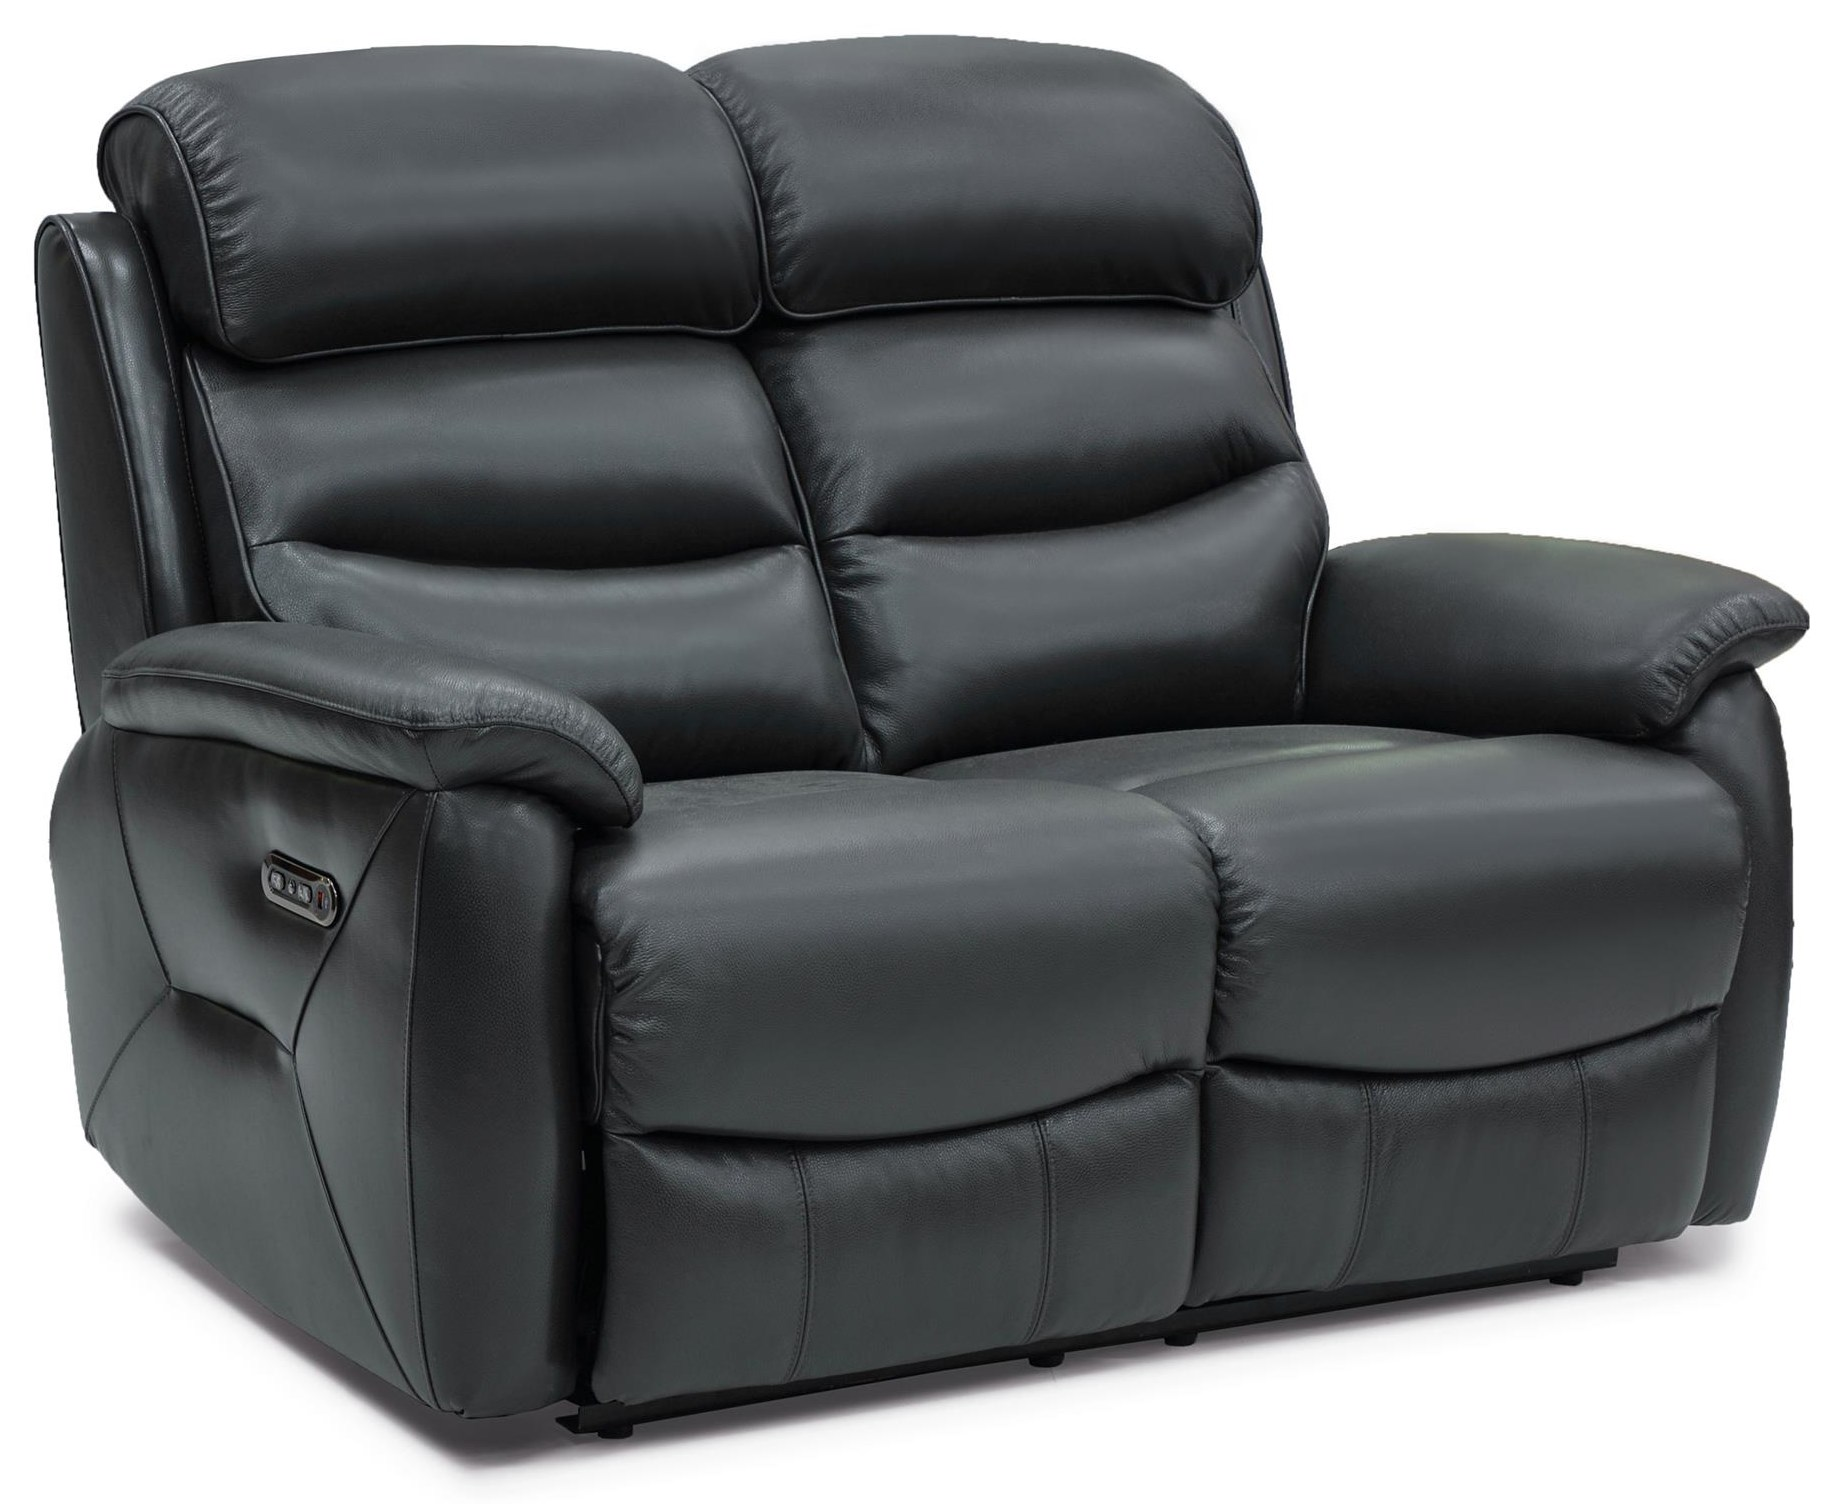 Lucie Power Reclining Leather Loveseat at Rotmans